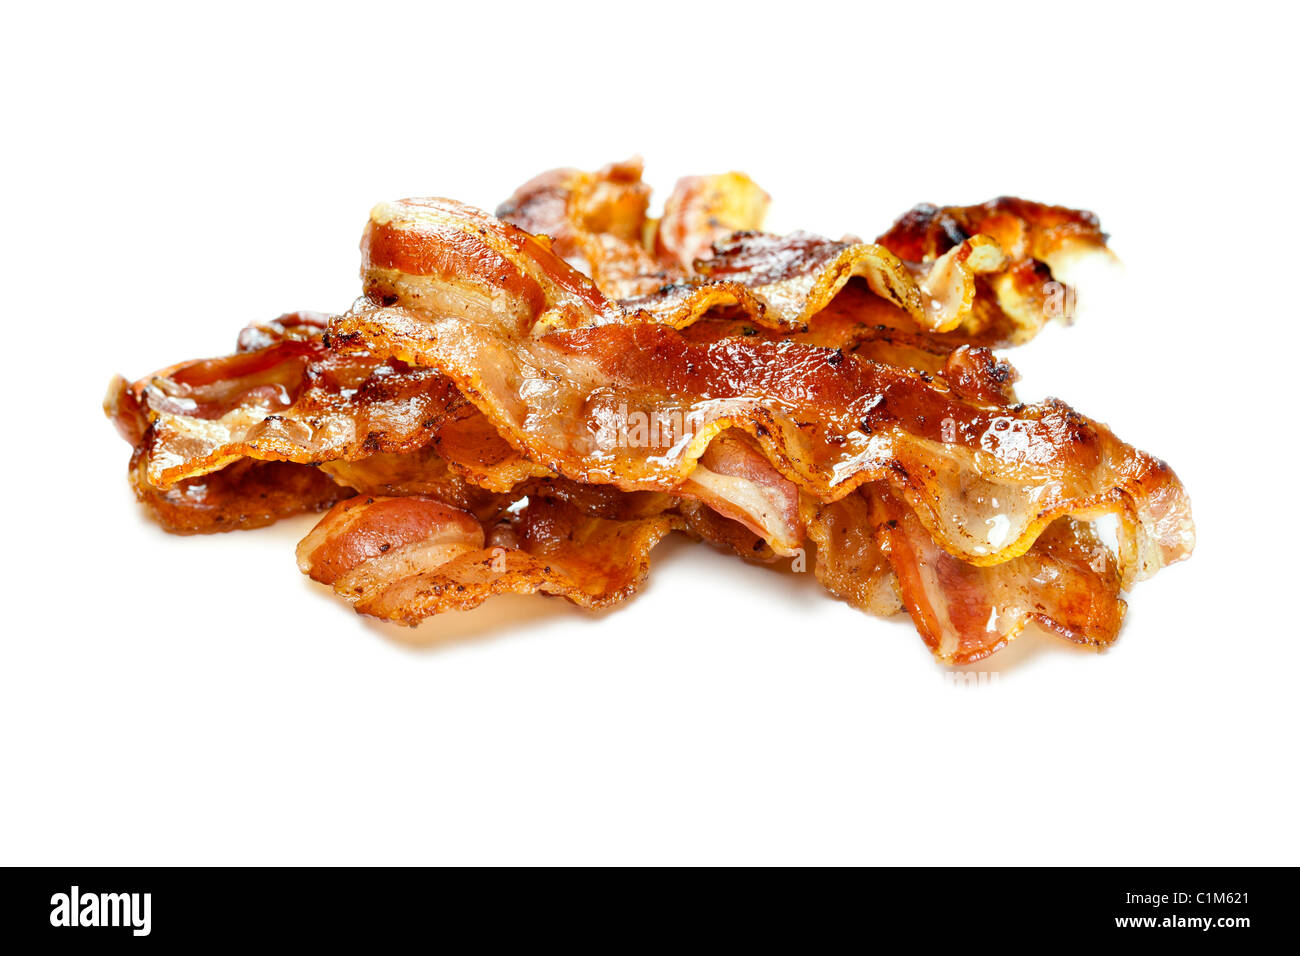 Bacon cuit isolé sur fond blanc. Charles Lupica Photo Stock